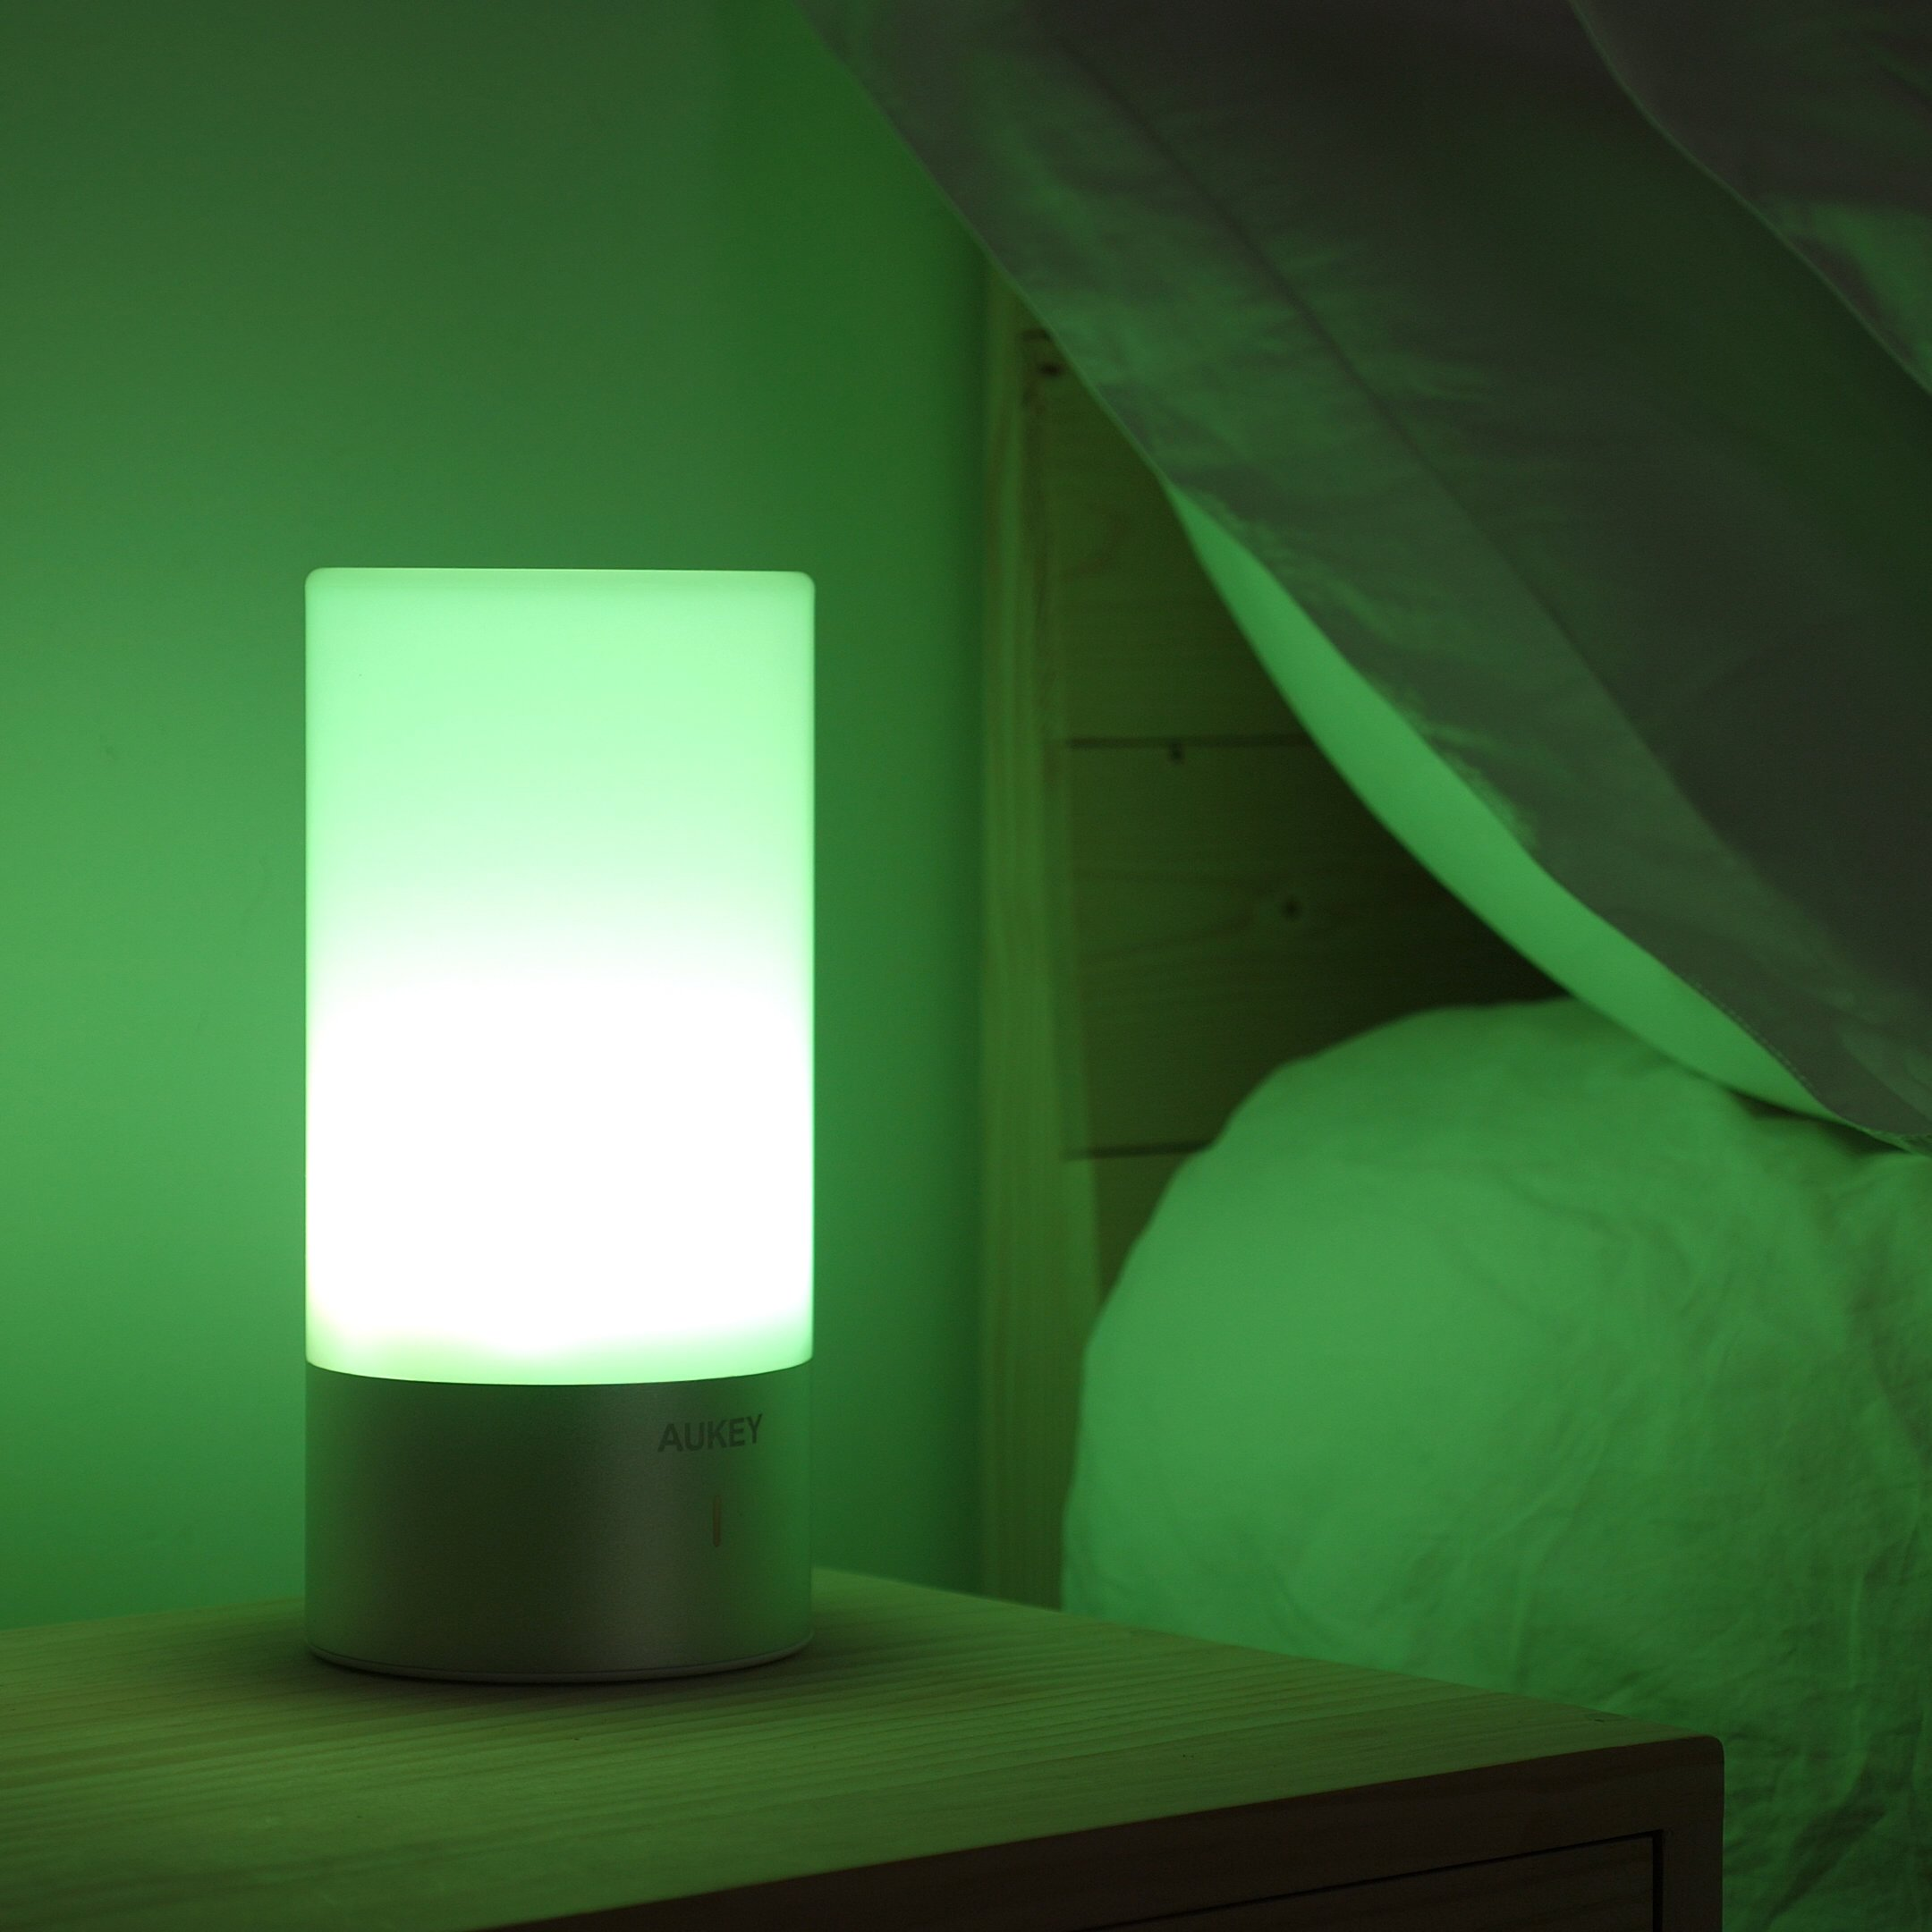 AUKEY Table Lamp, Touch Sensor Bedside Lamps + Dimmable Warm White Light & Color Changing RGB for Bedrooms by AUKEY (Image #6)